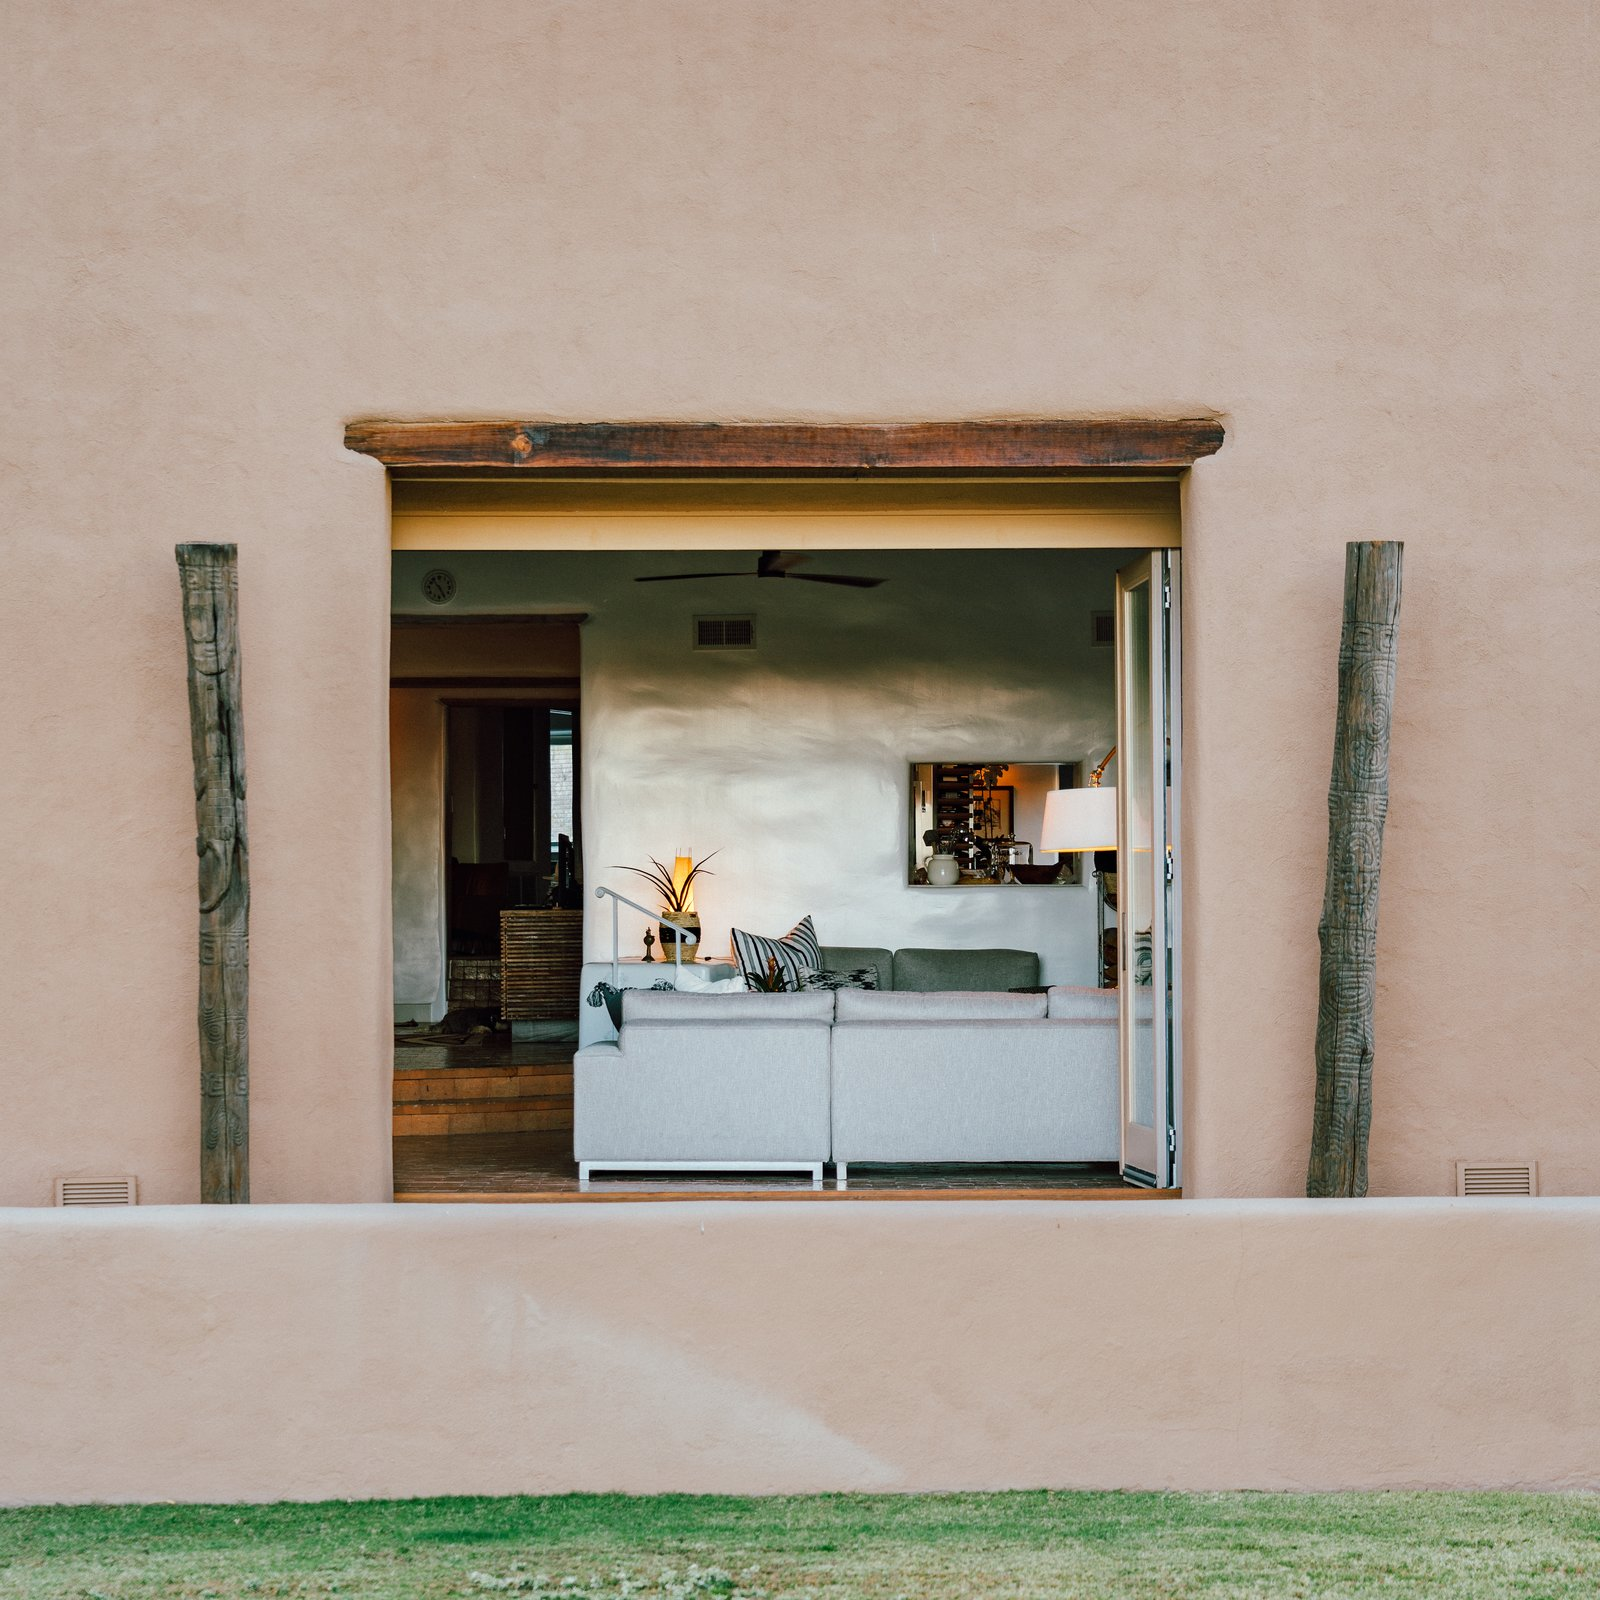 The 5,000-square-foot home has a main house with four bedrooms and three bathrooms, and a one-bed, one-bath casita. It's the epitome of a Santa Fe-style hacienda with a single story, endless loggias, and desert panoramas visible from every room. (Tim Melideo)